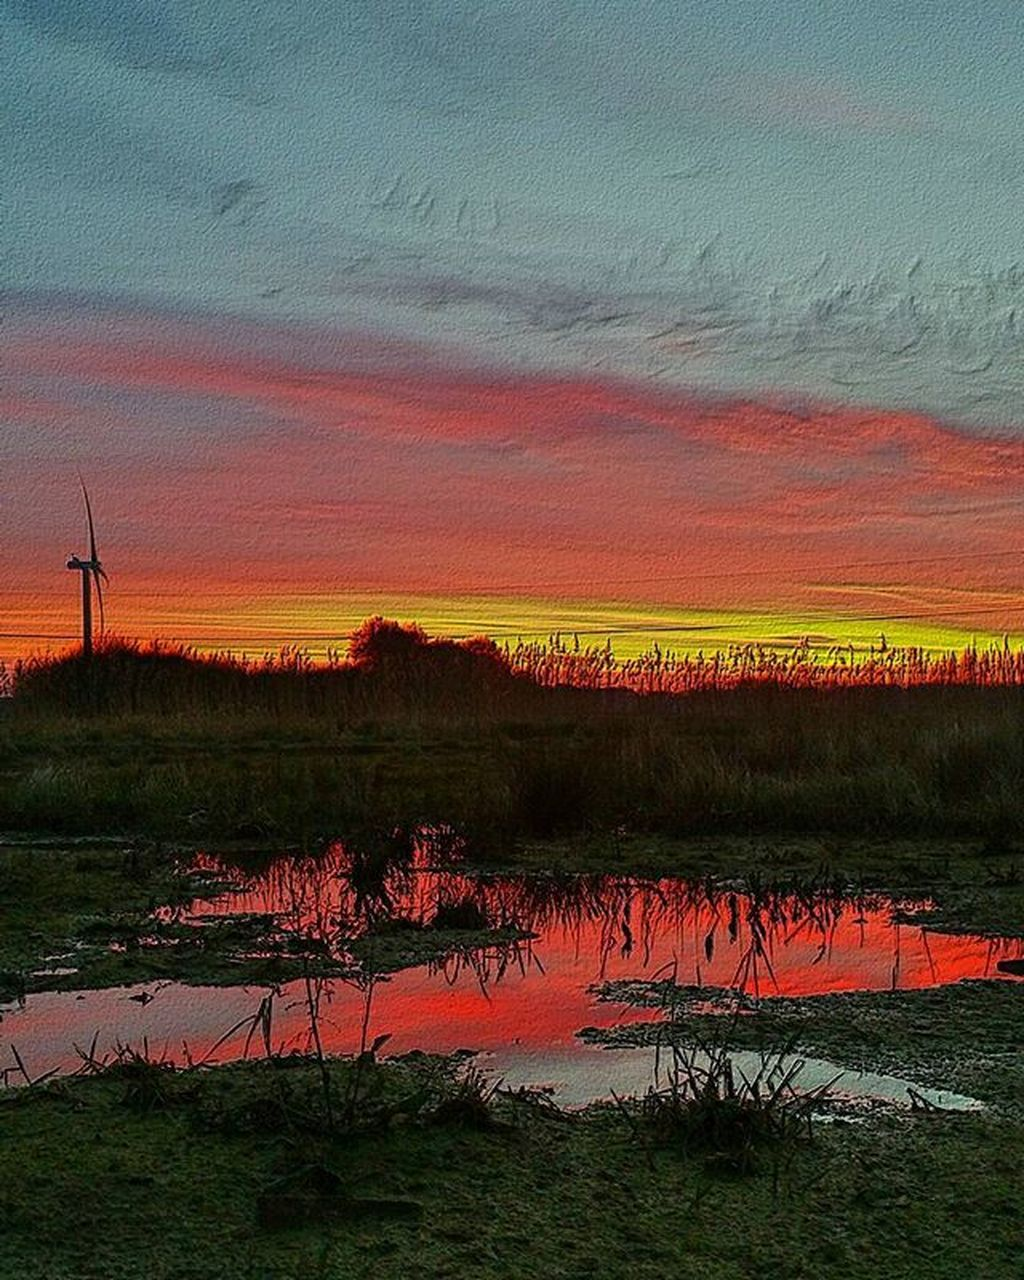 reflection, sunset, nature, beauty in nature, scenics, orange color, lake, landscape, outdoors, environment, no people, tranquility, red, water, multi colored, rural scene, sky, tree, day